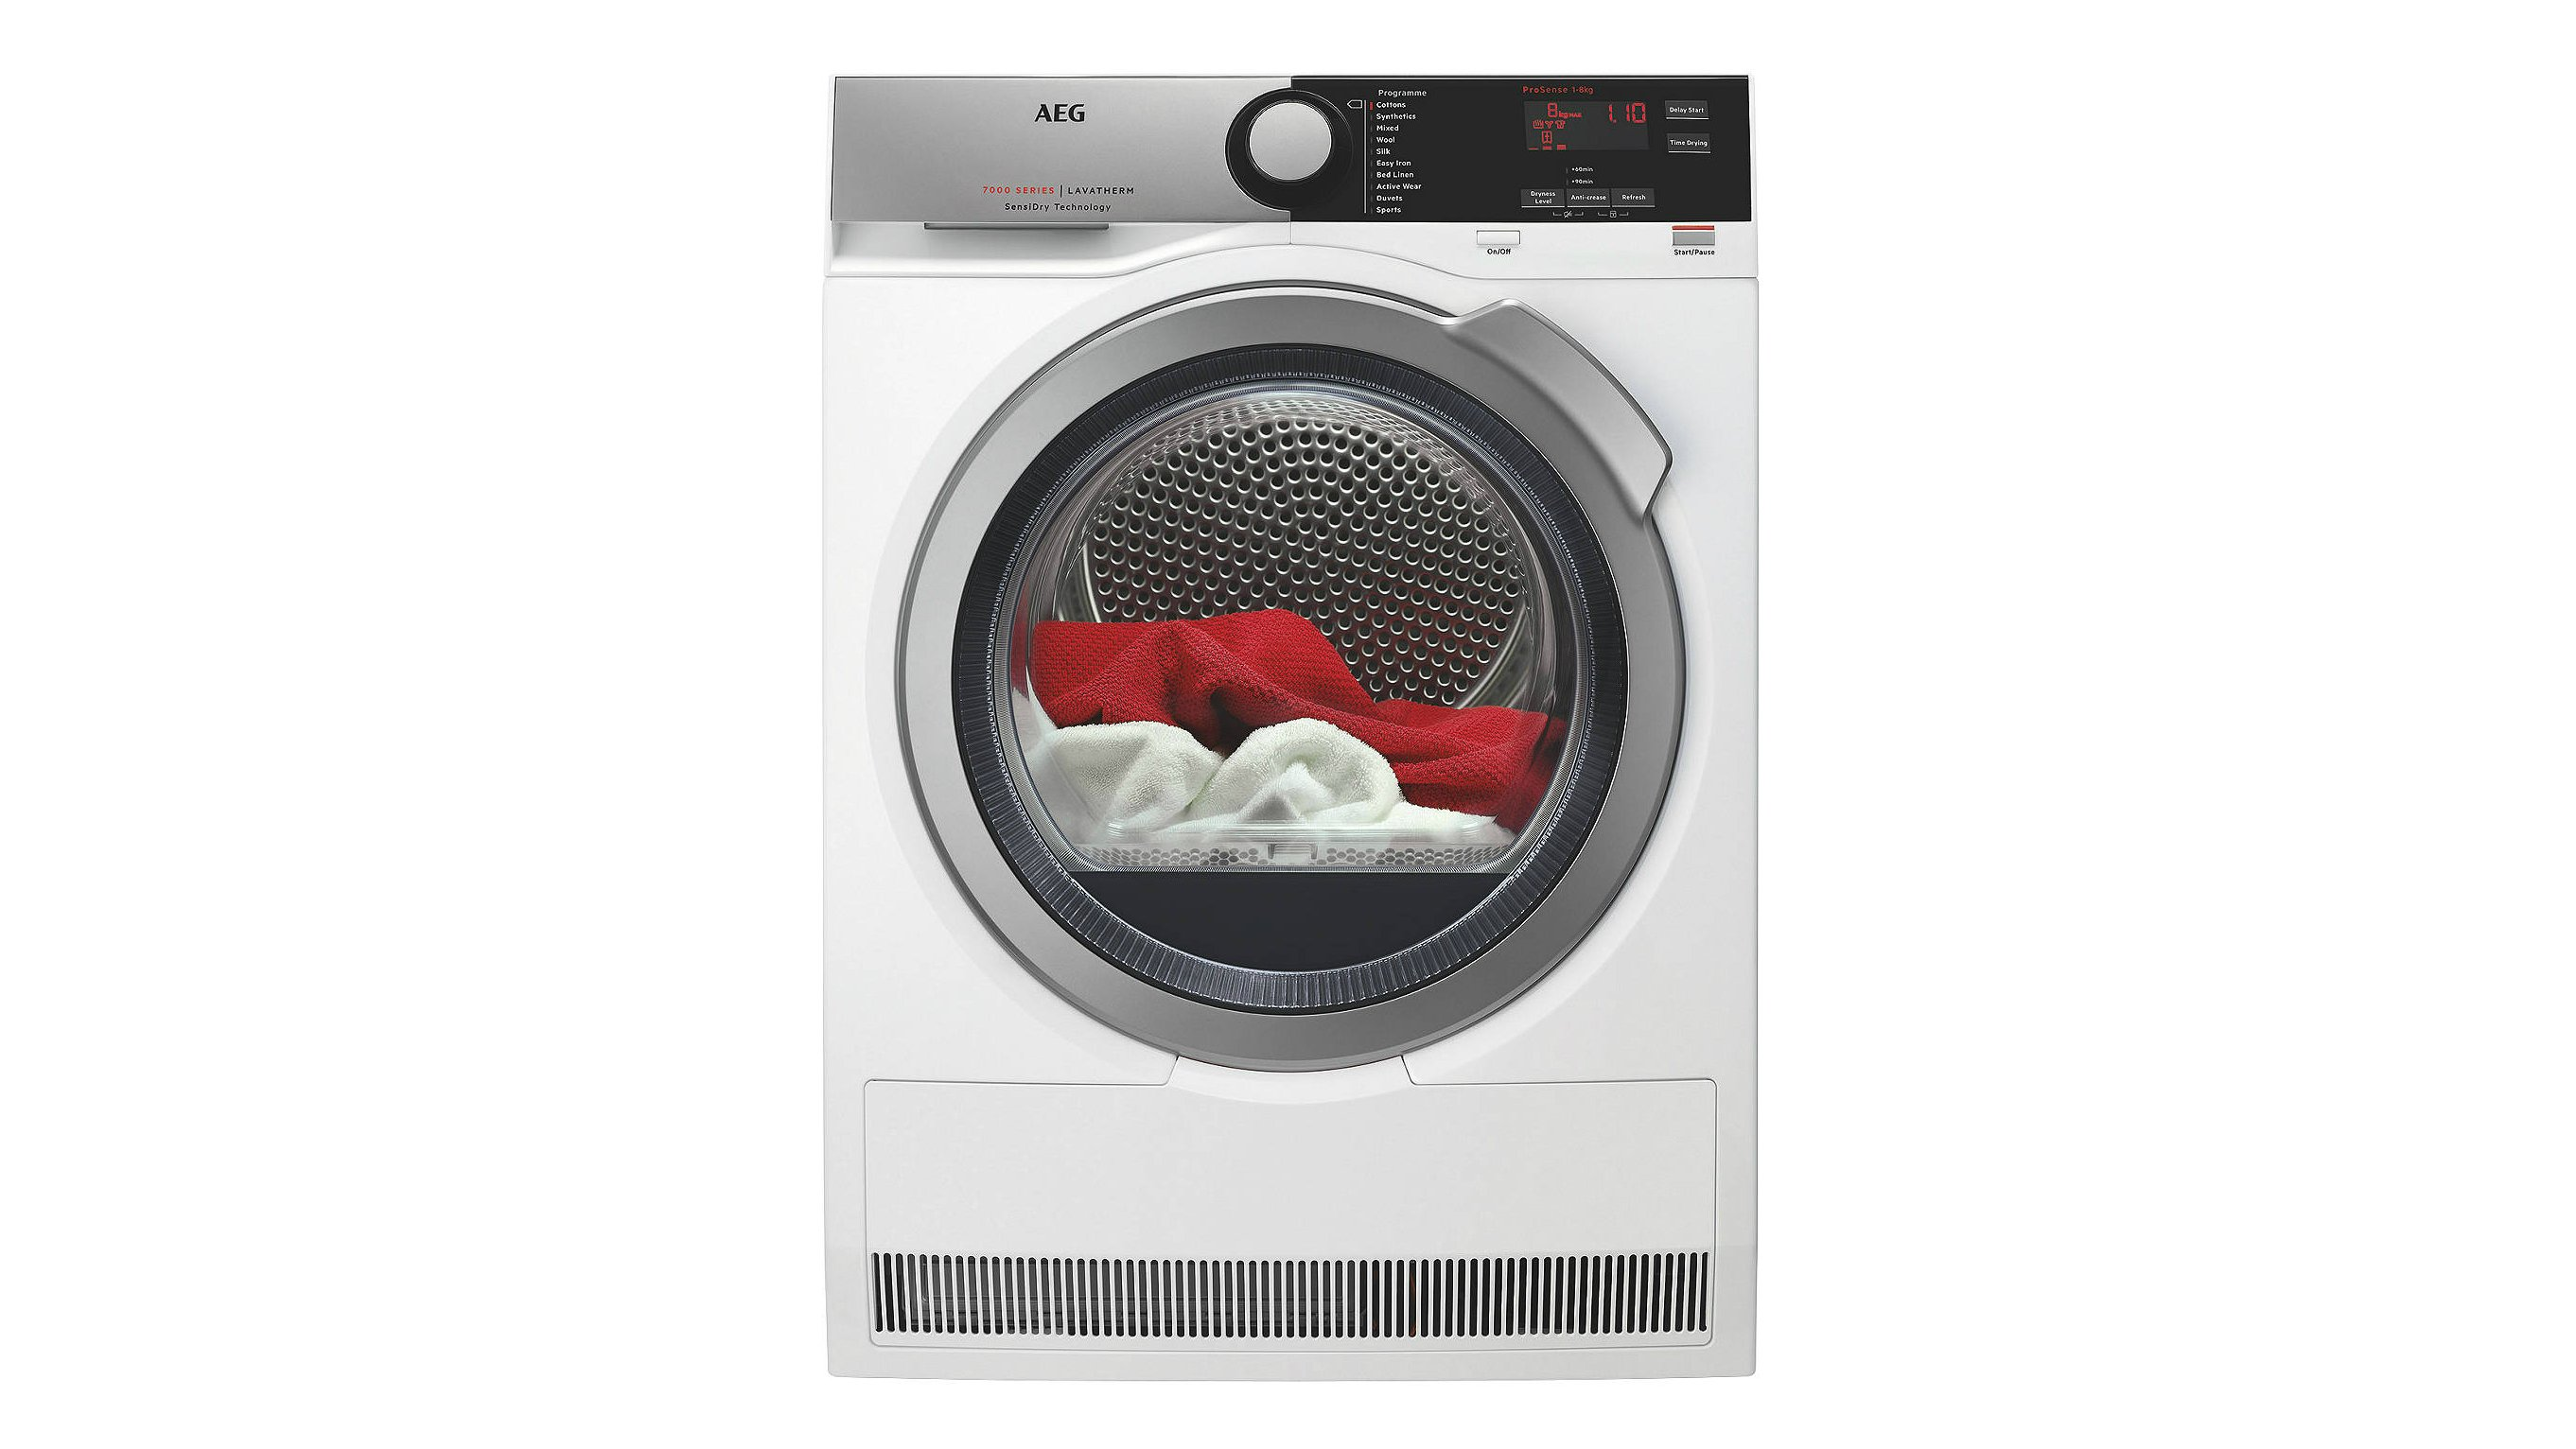 2019 Best Dryers Best tumble dryer 2019: Our pick of the best tumble dryers from